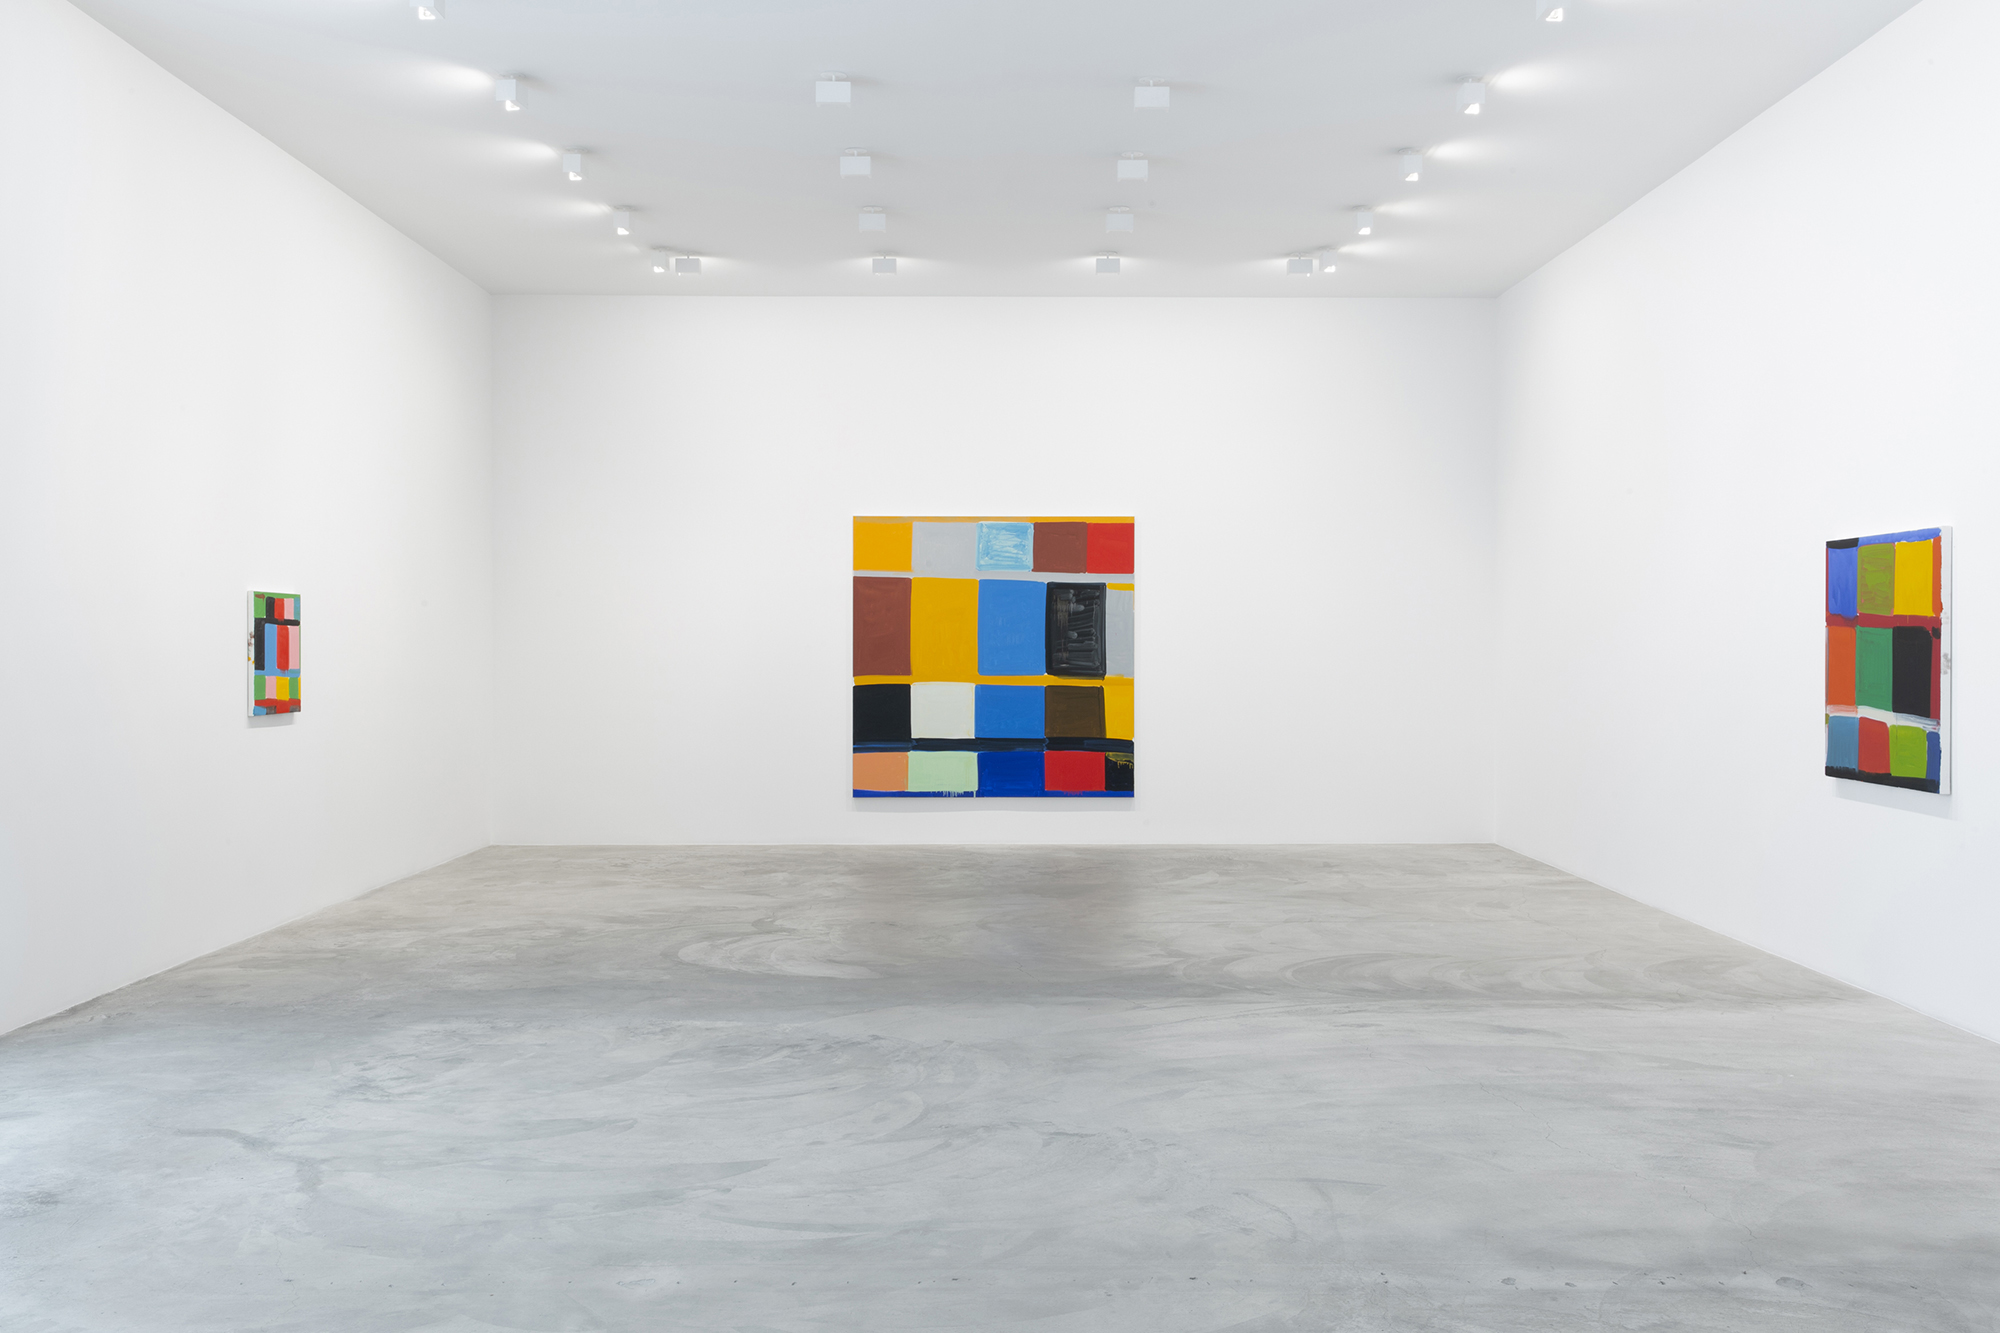 Installation View, How Black is That Blue, 2021 ©Stanley Whitney, Courtesy Matthew Marks Gallery